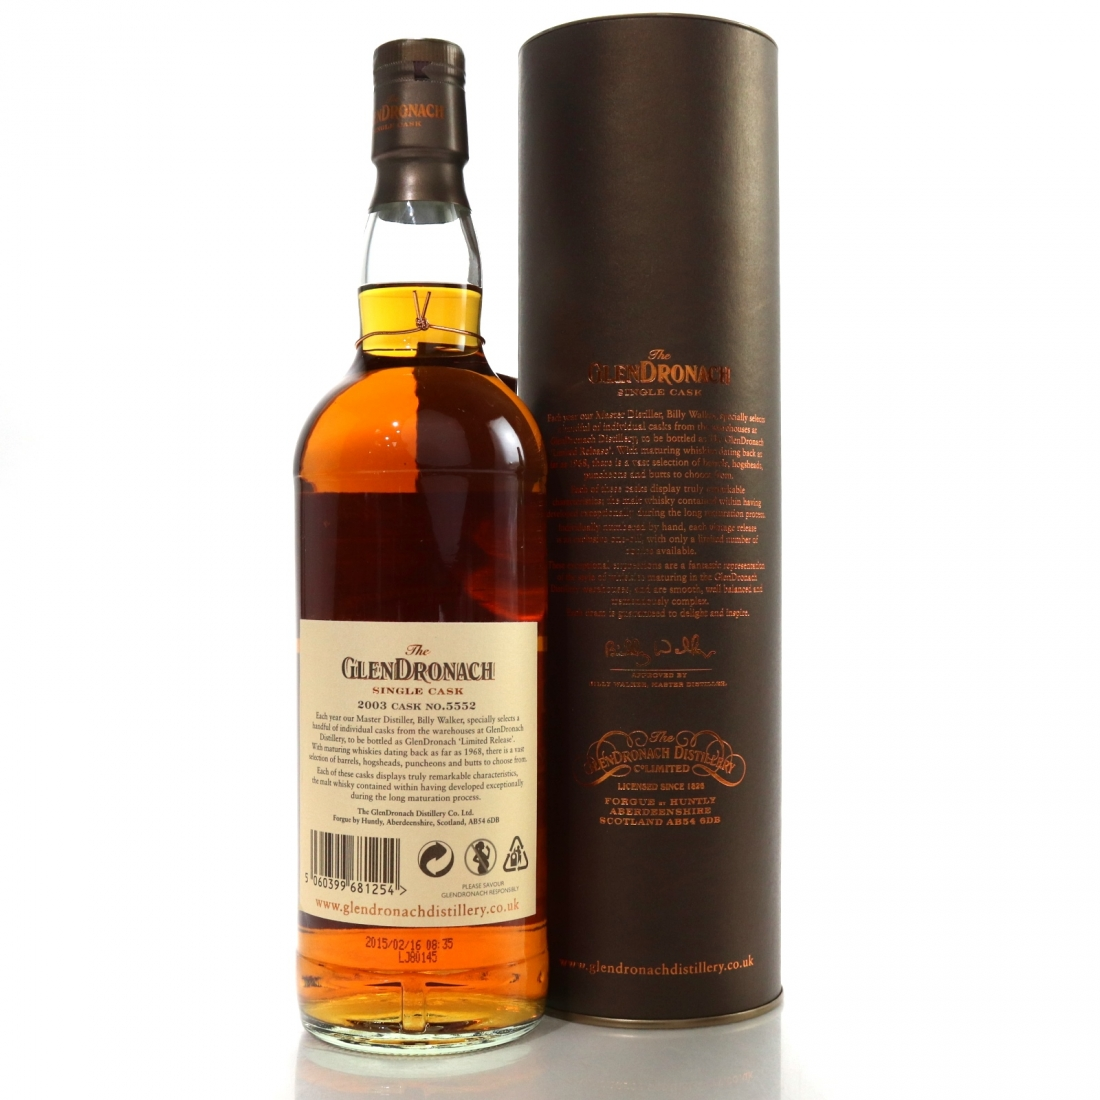 Glendronach 2003 Single Cask 11 Year Old #5552 / The Old Pipe